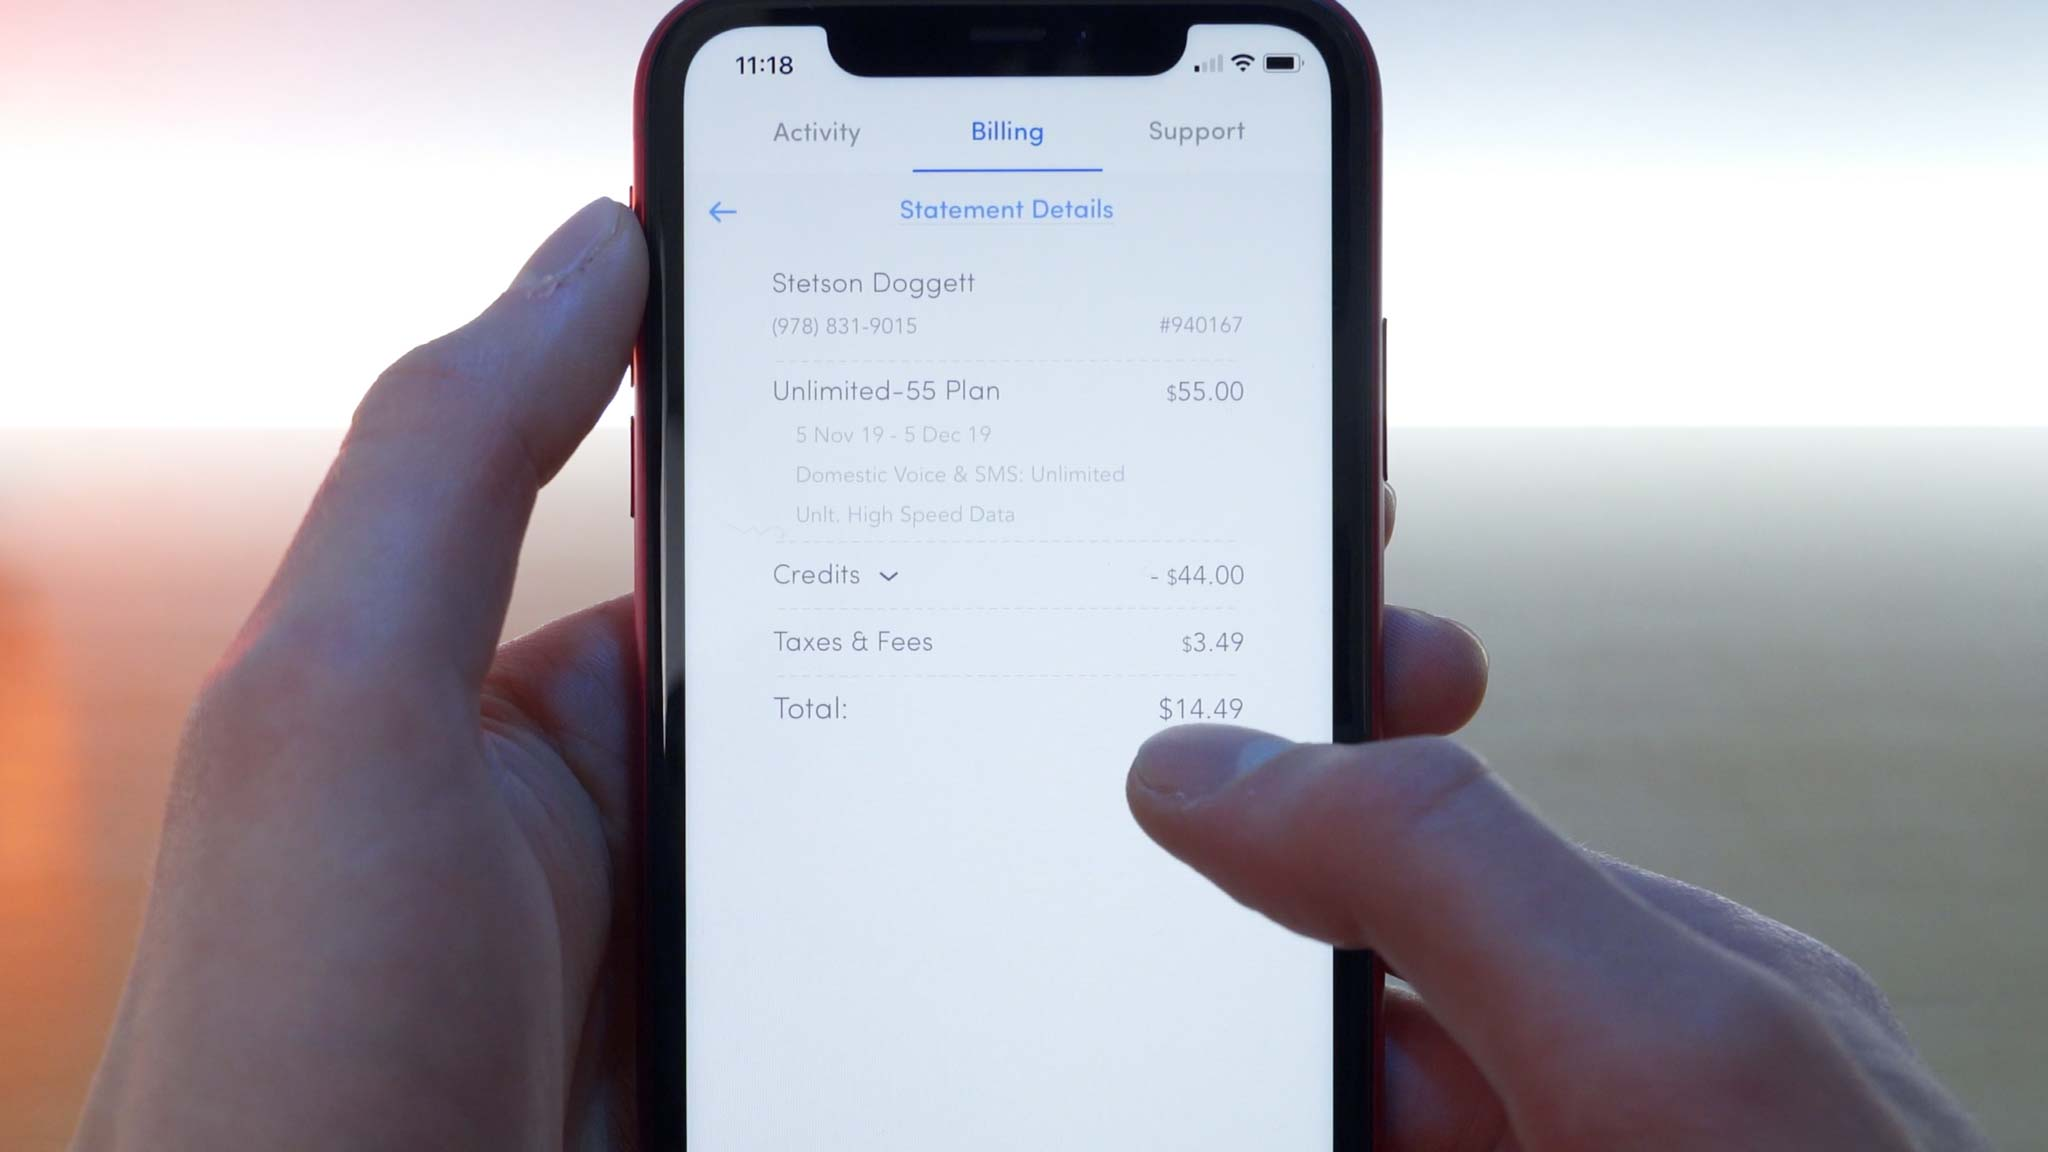 iPhone 11 Pro open to Wing application showing $44 credit received and second month bill was $14.49